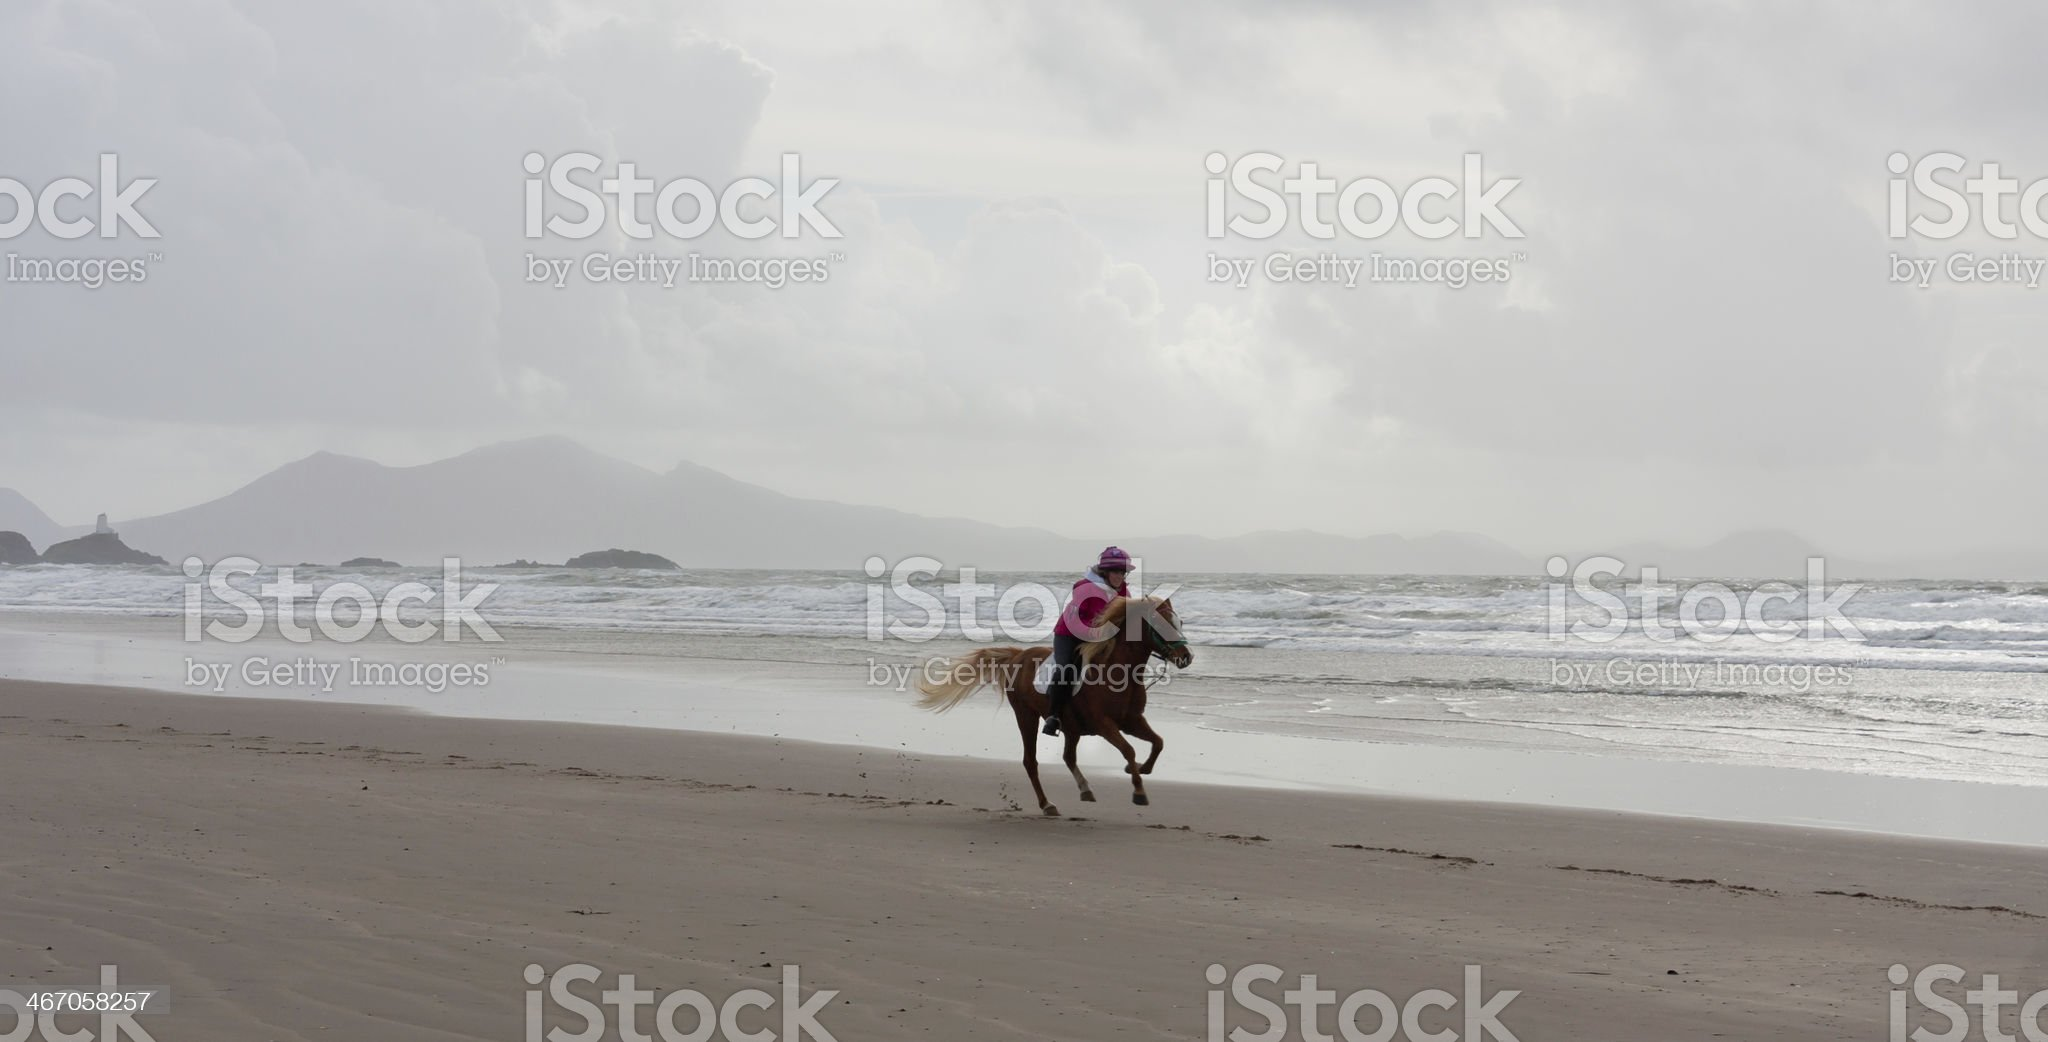 Just me and my horse! royalty-free stock photo